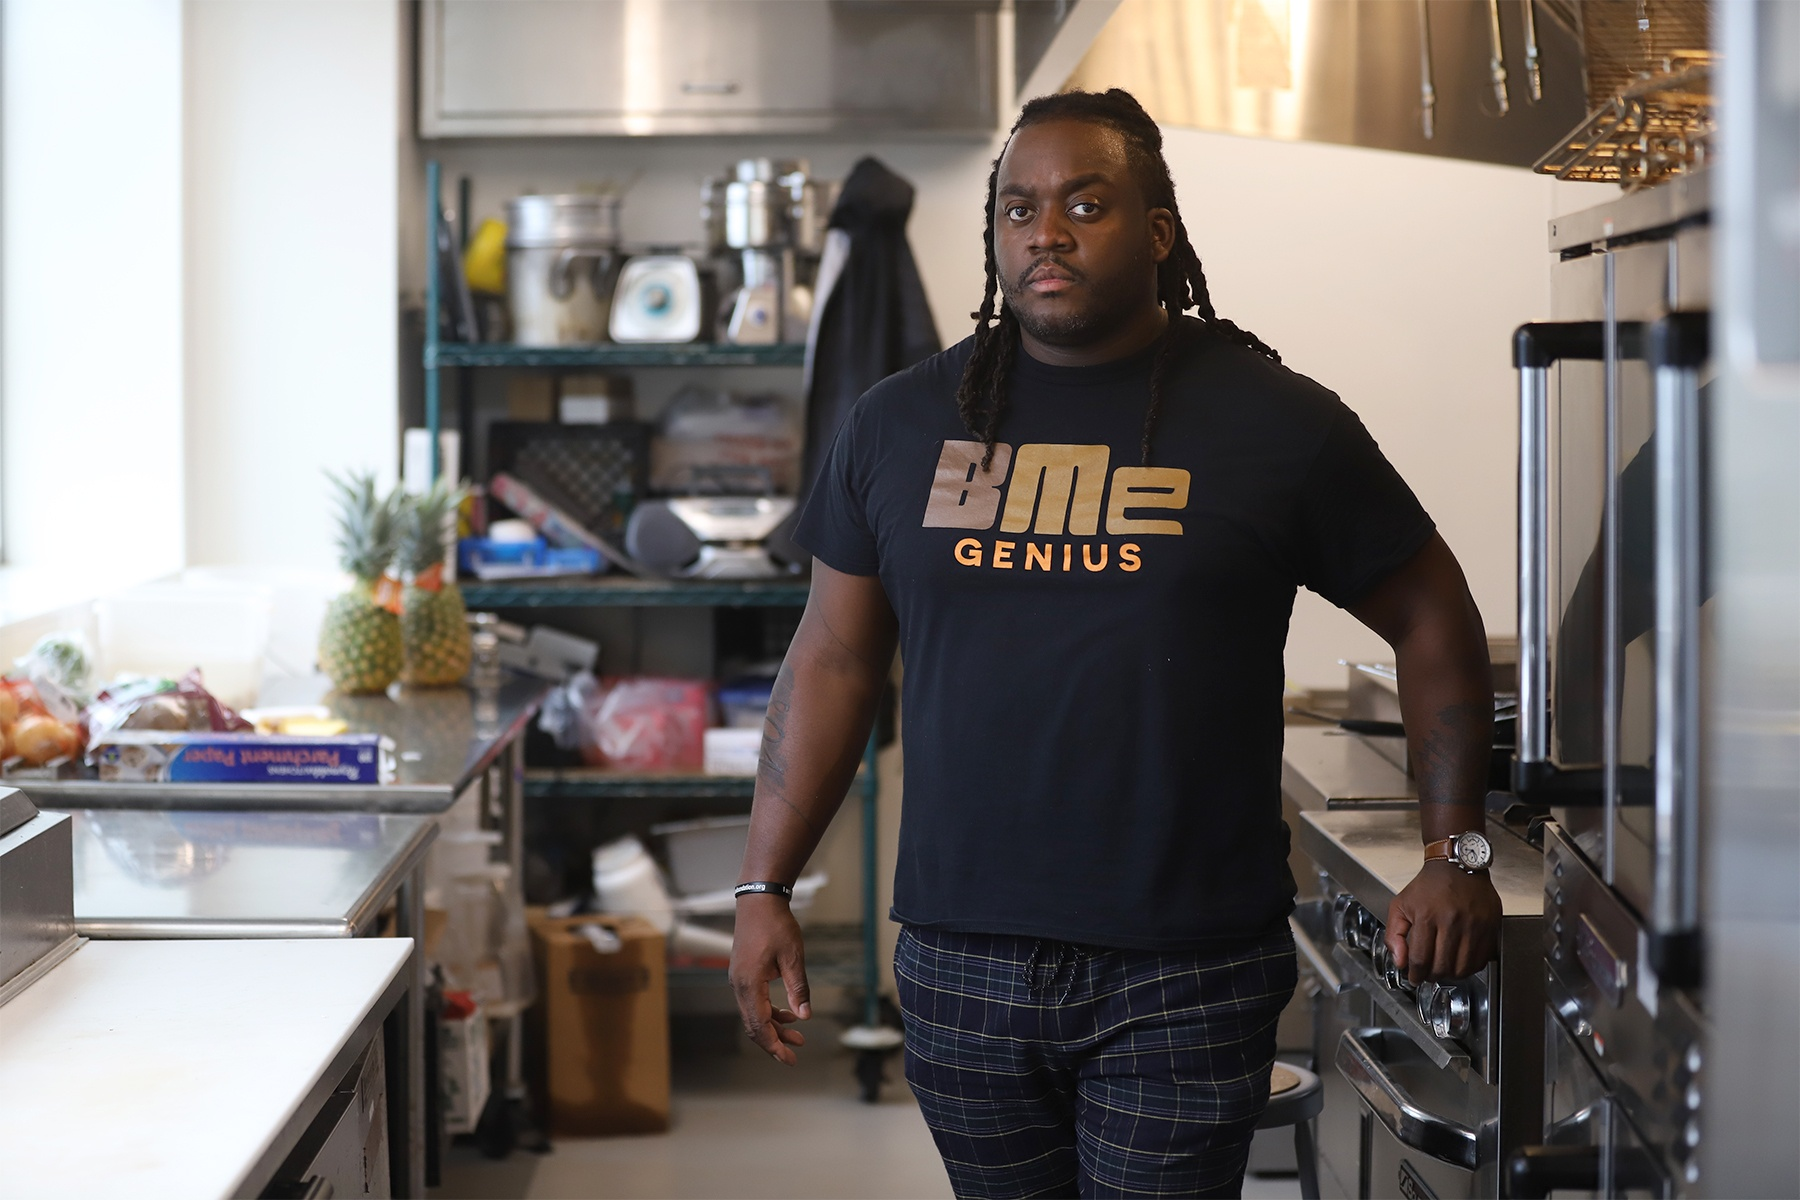 Chef Claudy Pierre stands in a kitchen area near a stove. Food and cooking items are in the background.